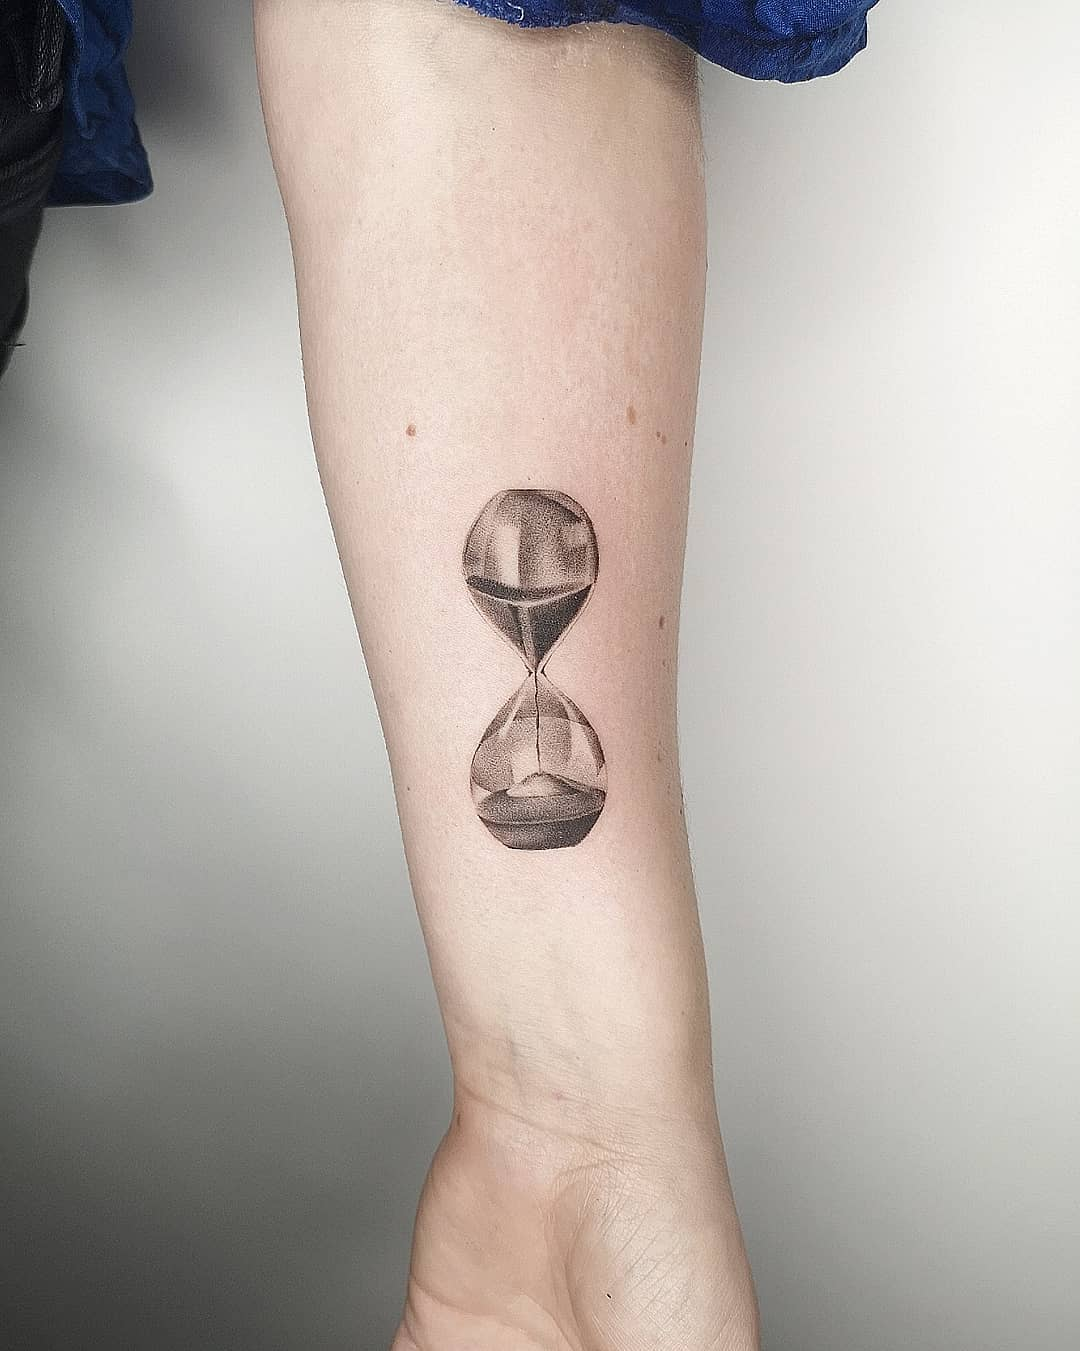 Hourglass Tattoo Meaning   BlendUp Tattoo Meanings